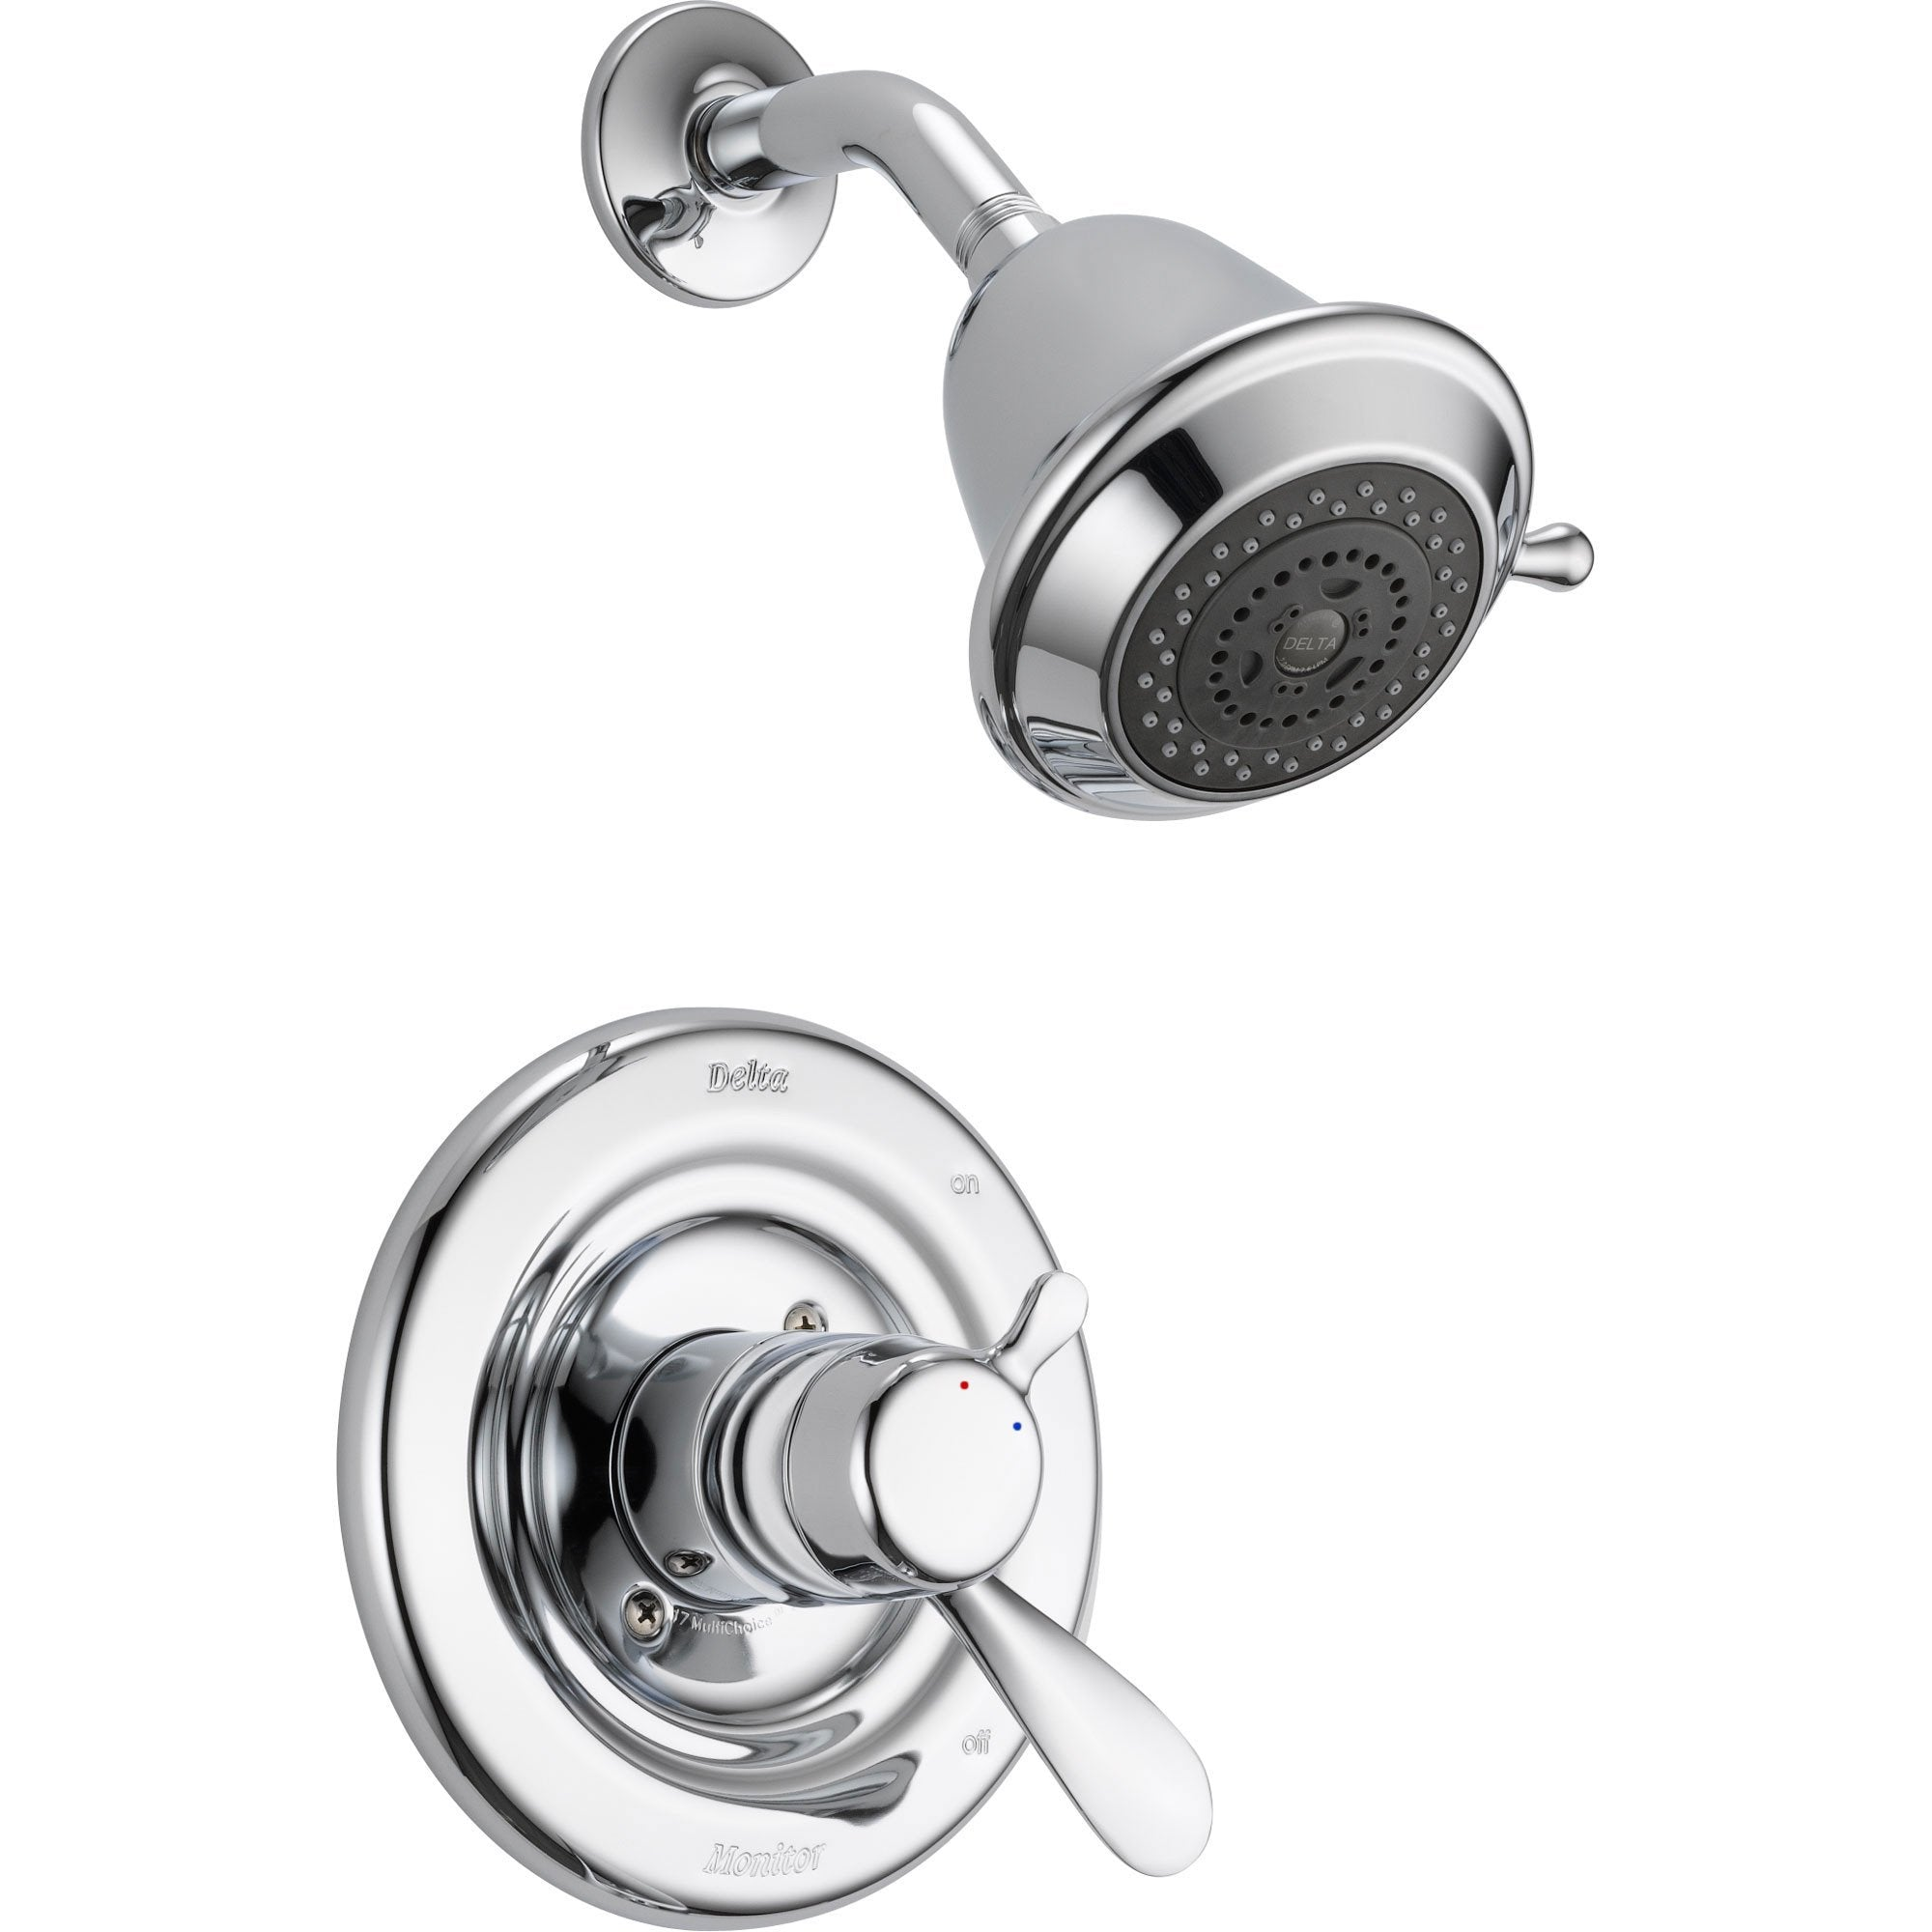 Delta Innovations Chrome Temp / Volume Control Shower Faucet with Valve D669V